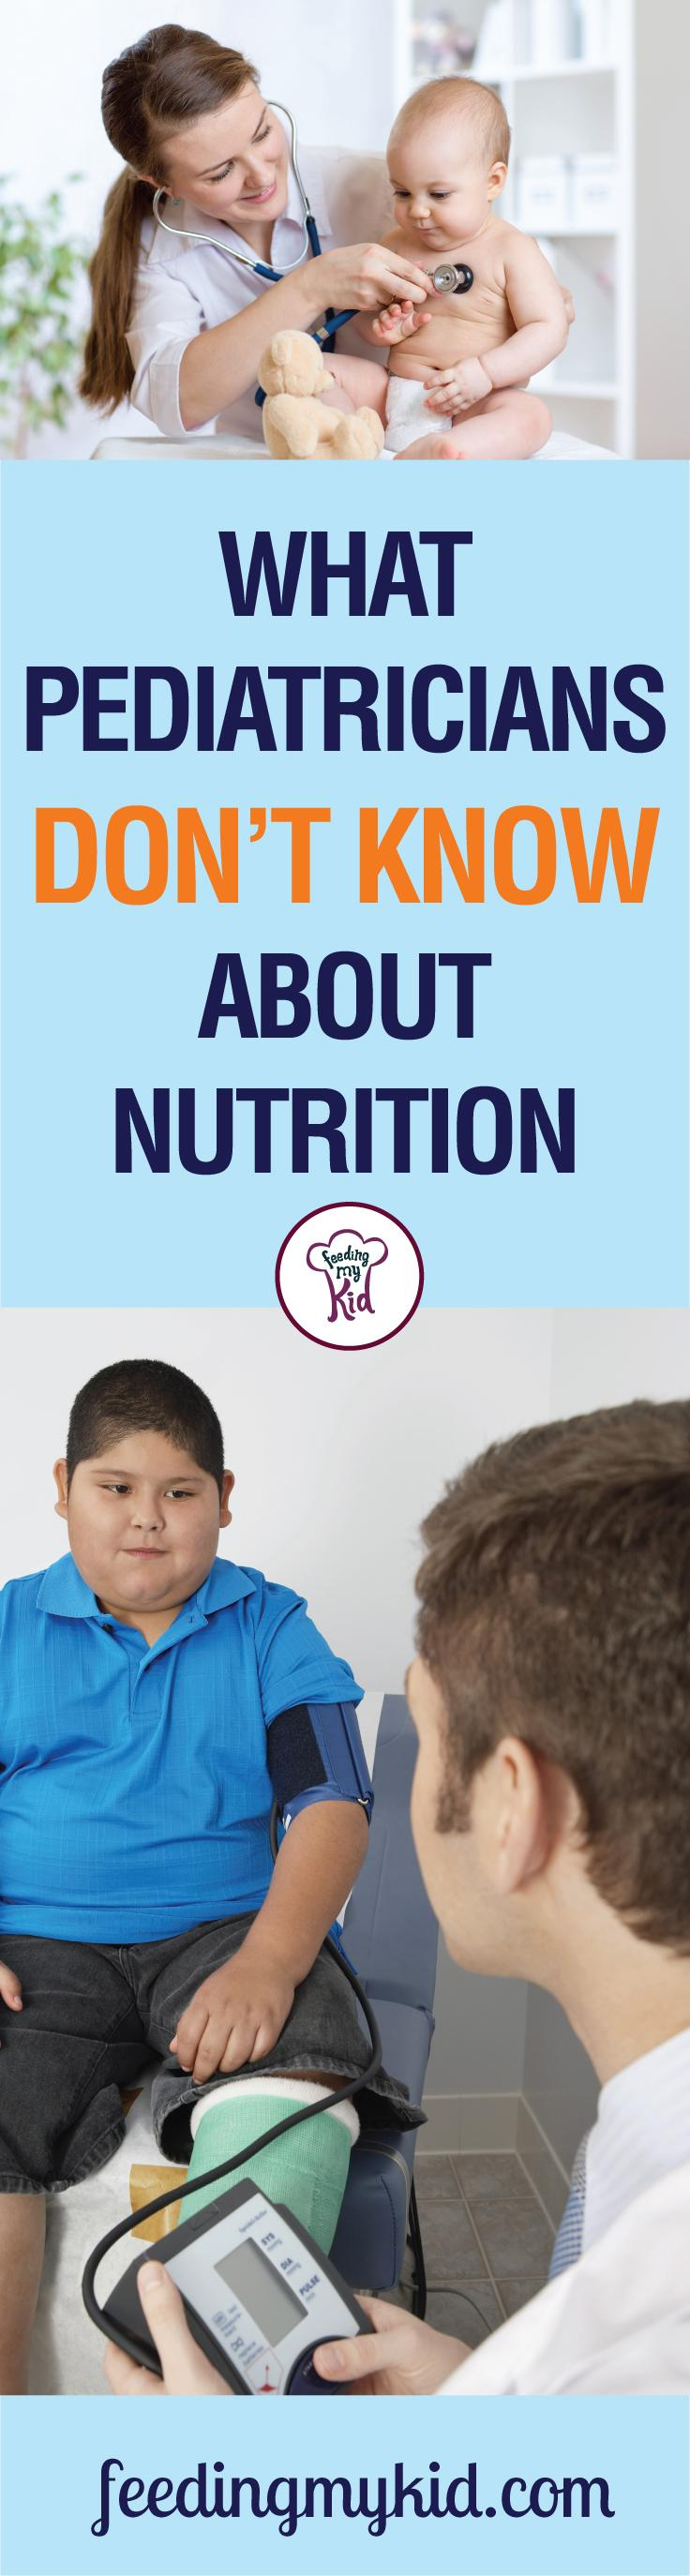 This is a must share! Pediatricians may not know enough about nutrition to keep your kids healthy. Feeding My Kid is a website for parents, filled with all the information you need about how to raise healthy kids, from healthy tips to nutritious recipes. #healthykids #pediatricians